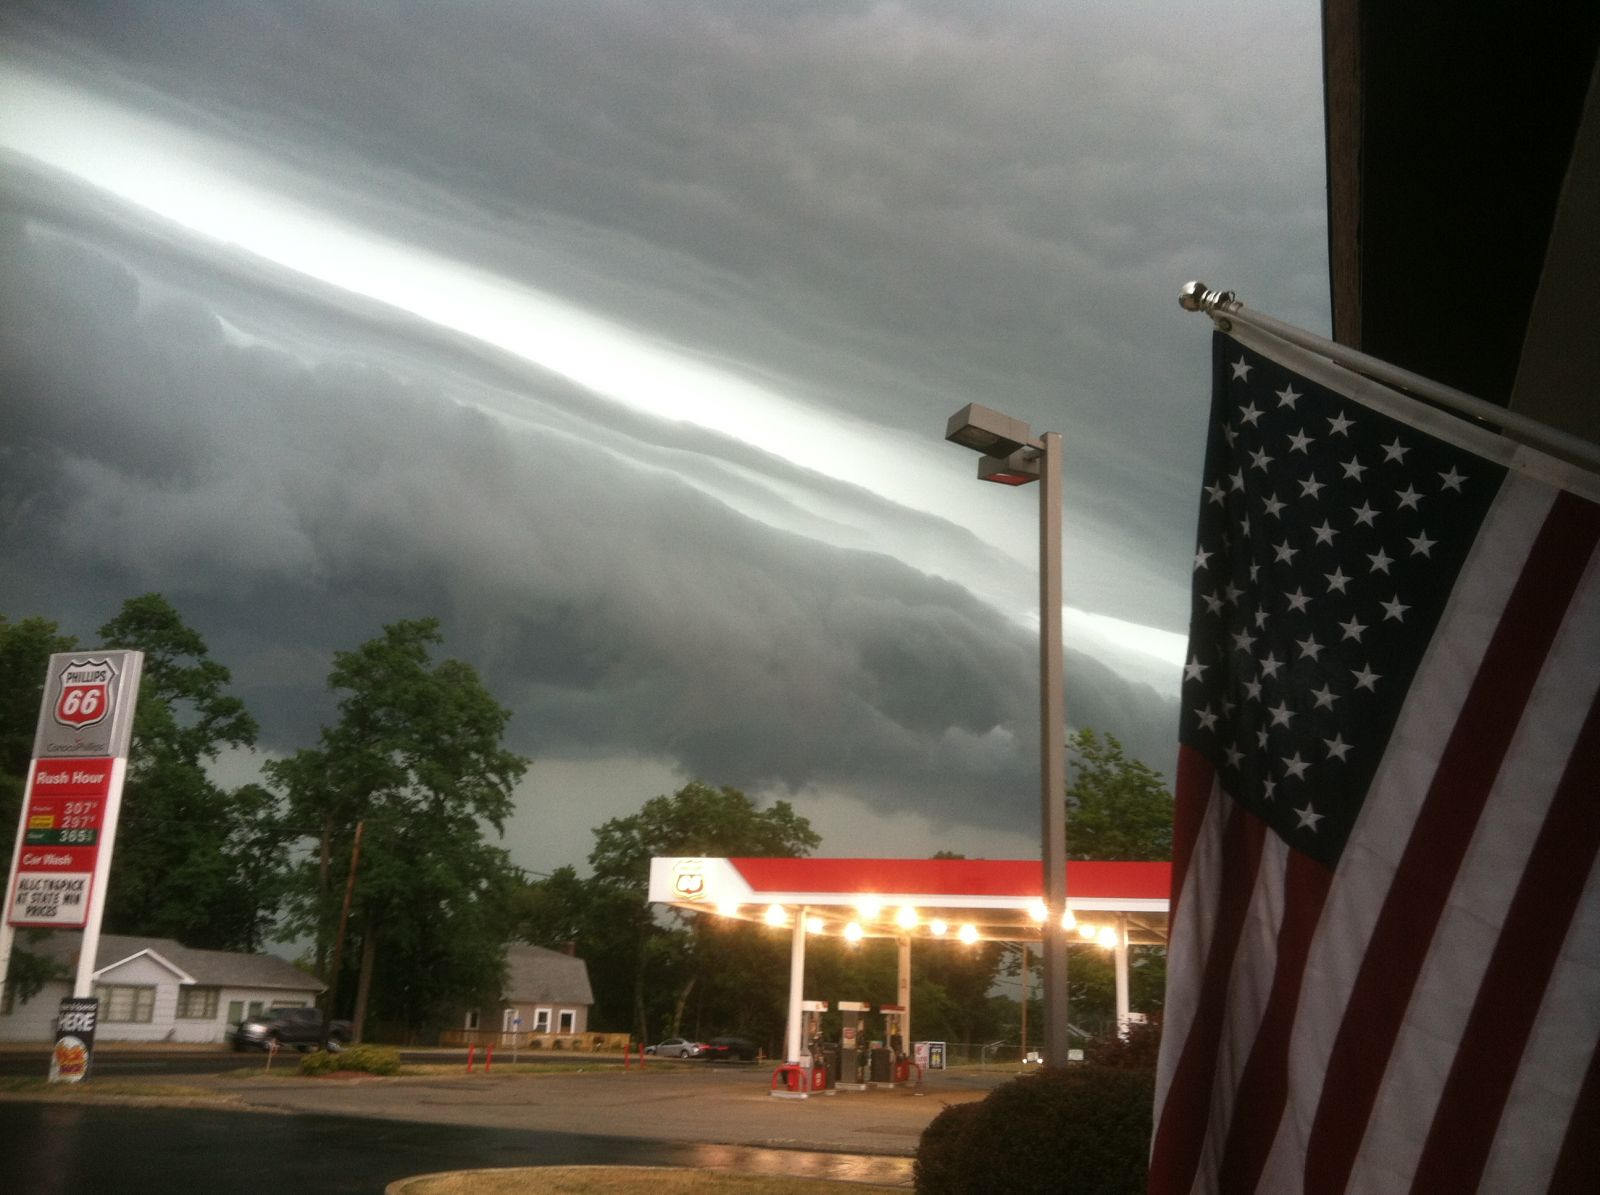 Photo of the shelf cloud that preceded the Derecho in LaPorte, IN (courtesy of Kevin Gould)